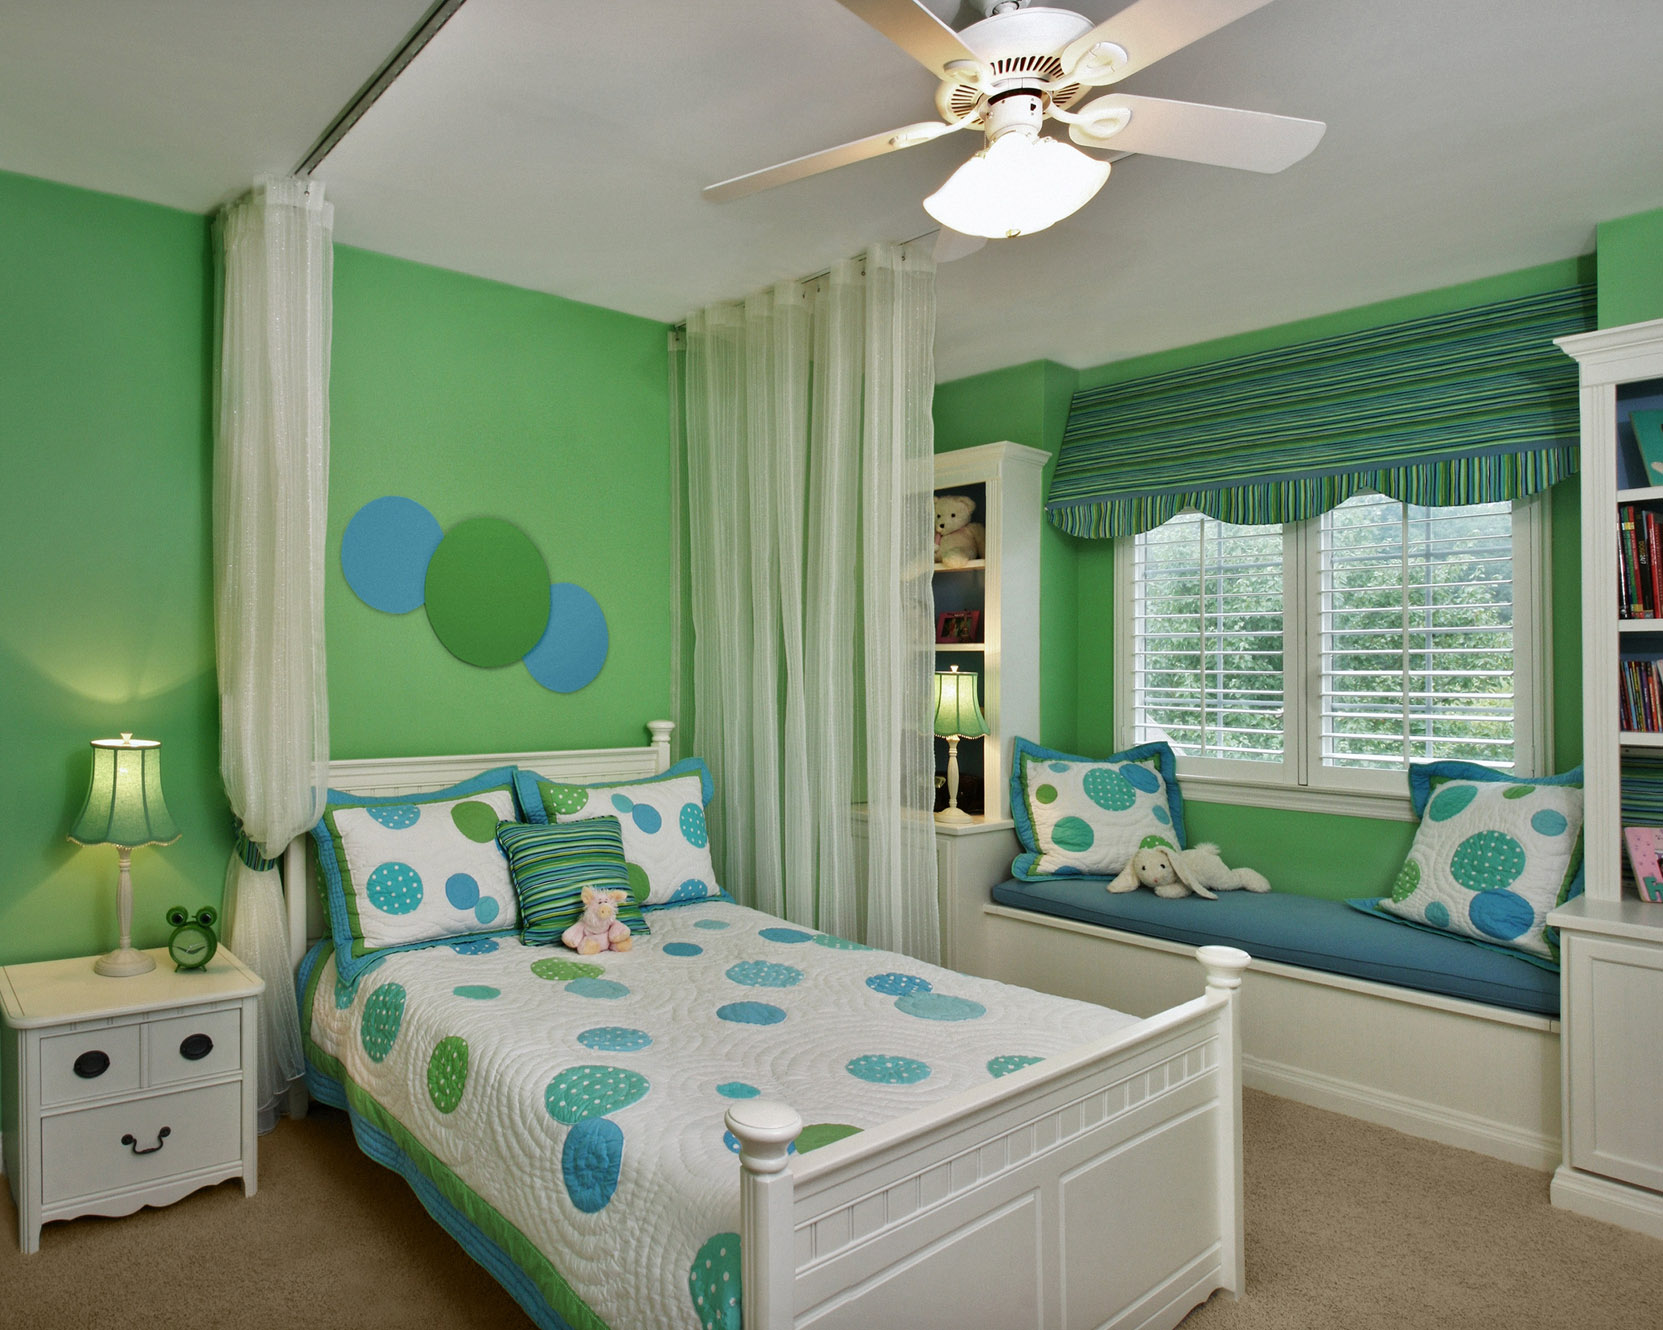 apple green walls set the stage for this fun circle multi colored fabric used in the bedding and accent pillows notice the coordinating striped canopy - Multi Canopy Decor